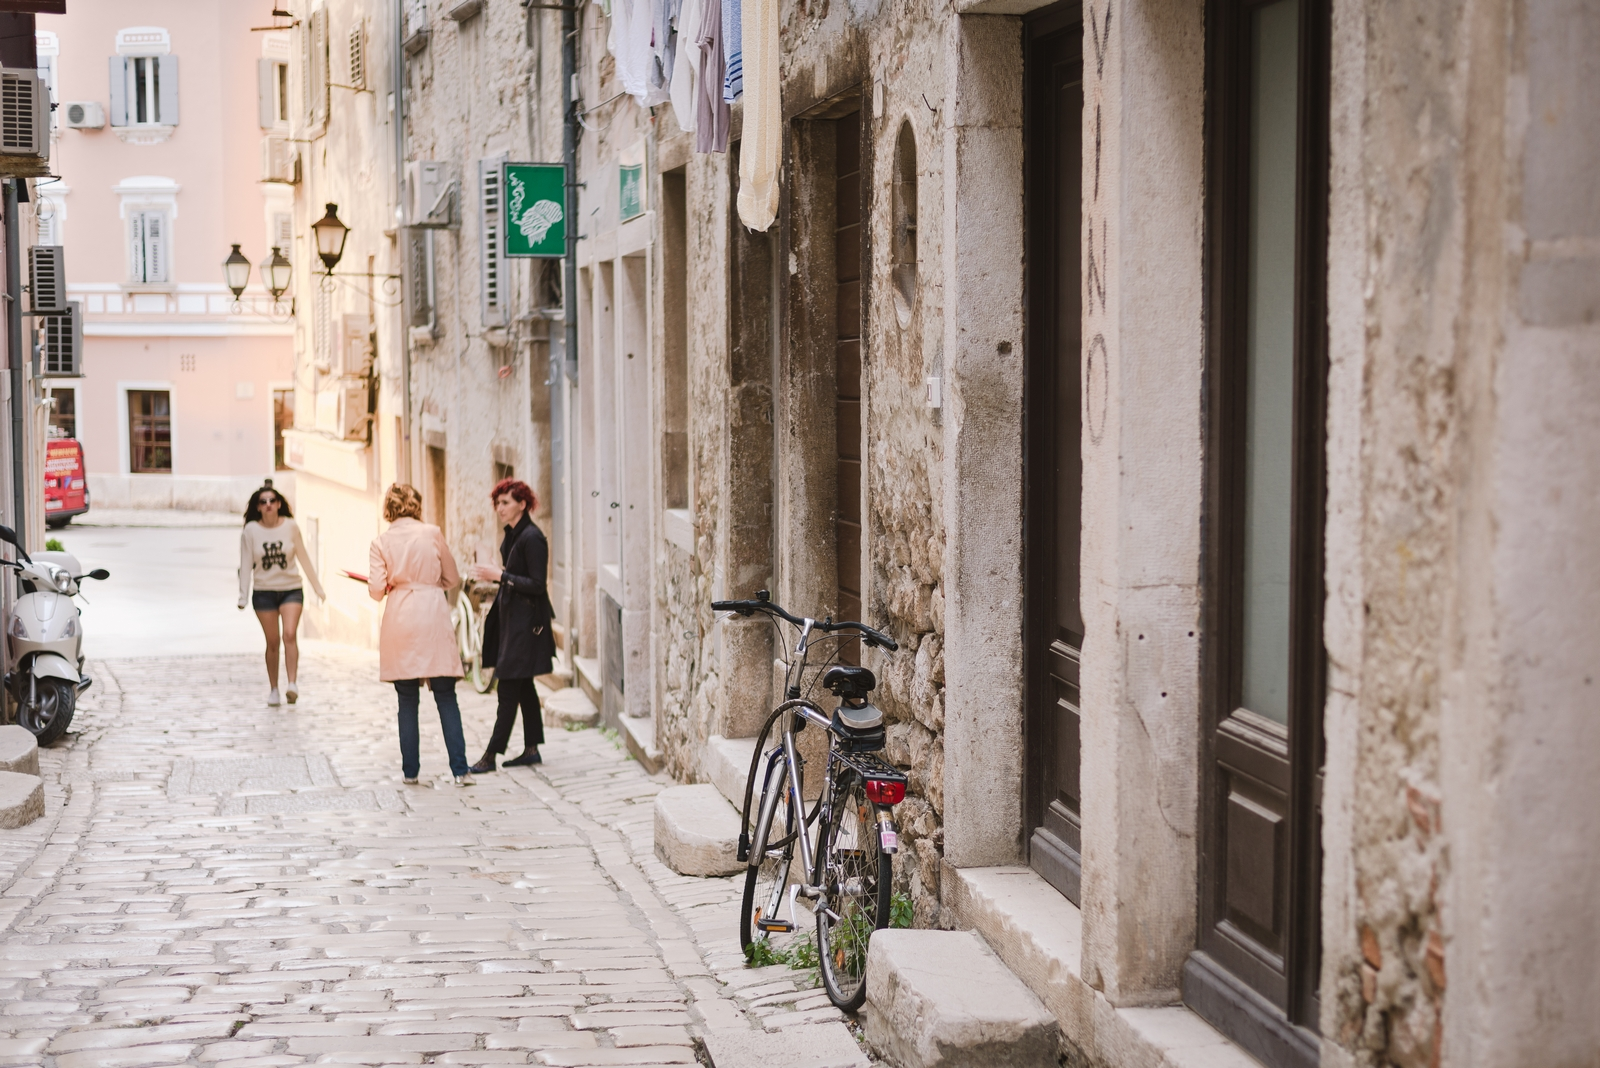 Charming streets in the old town of Rovinj, Istria - from travel blog http://Epepa.eu